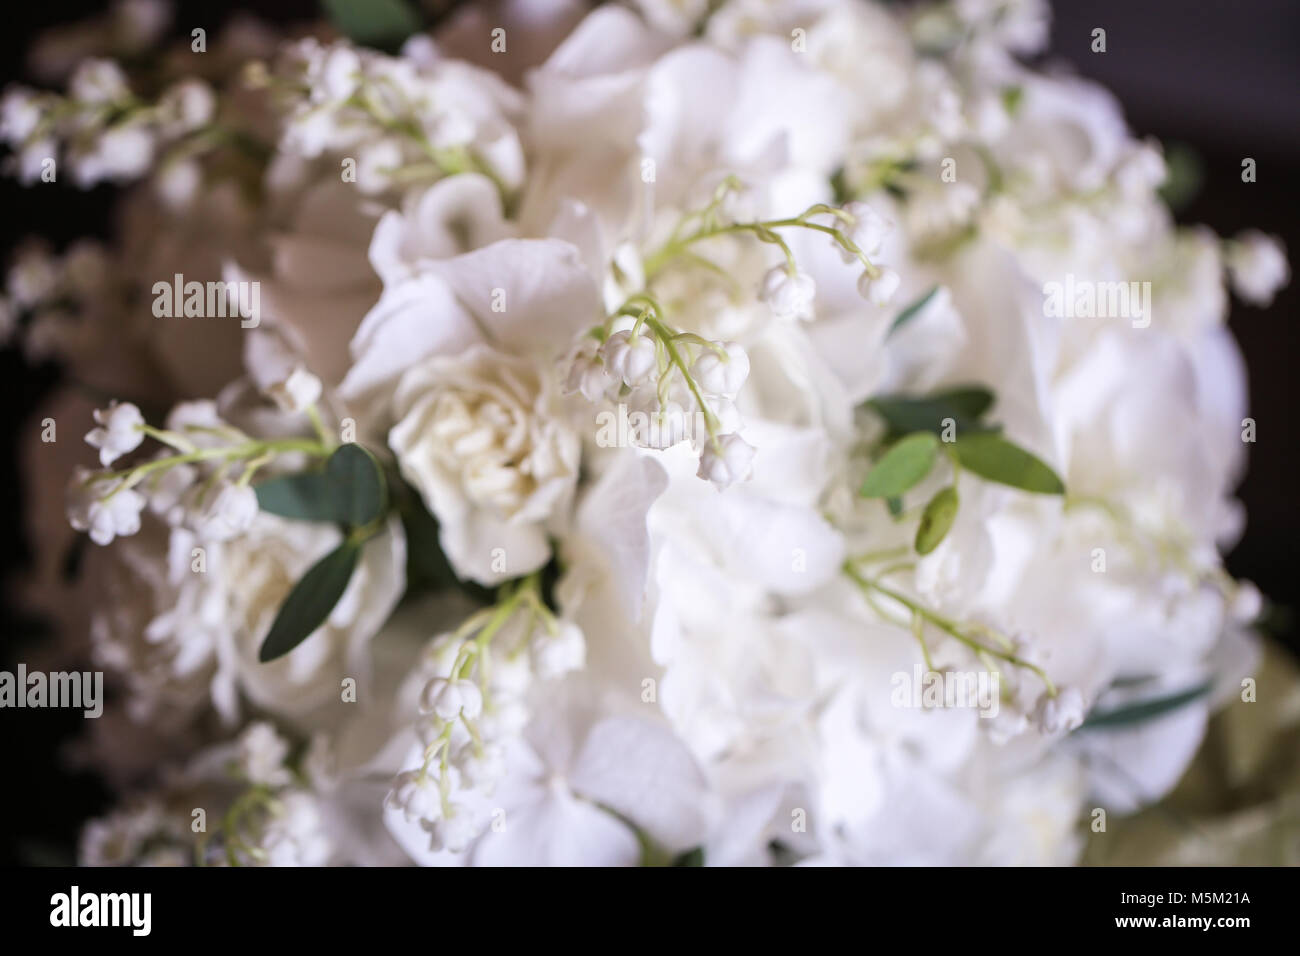 Wedding Bouquet Of White Small Flowers Lily Of The Valley At Girls